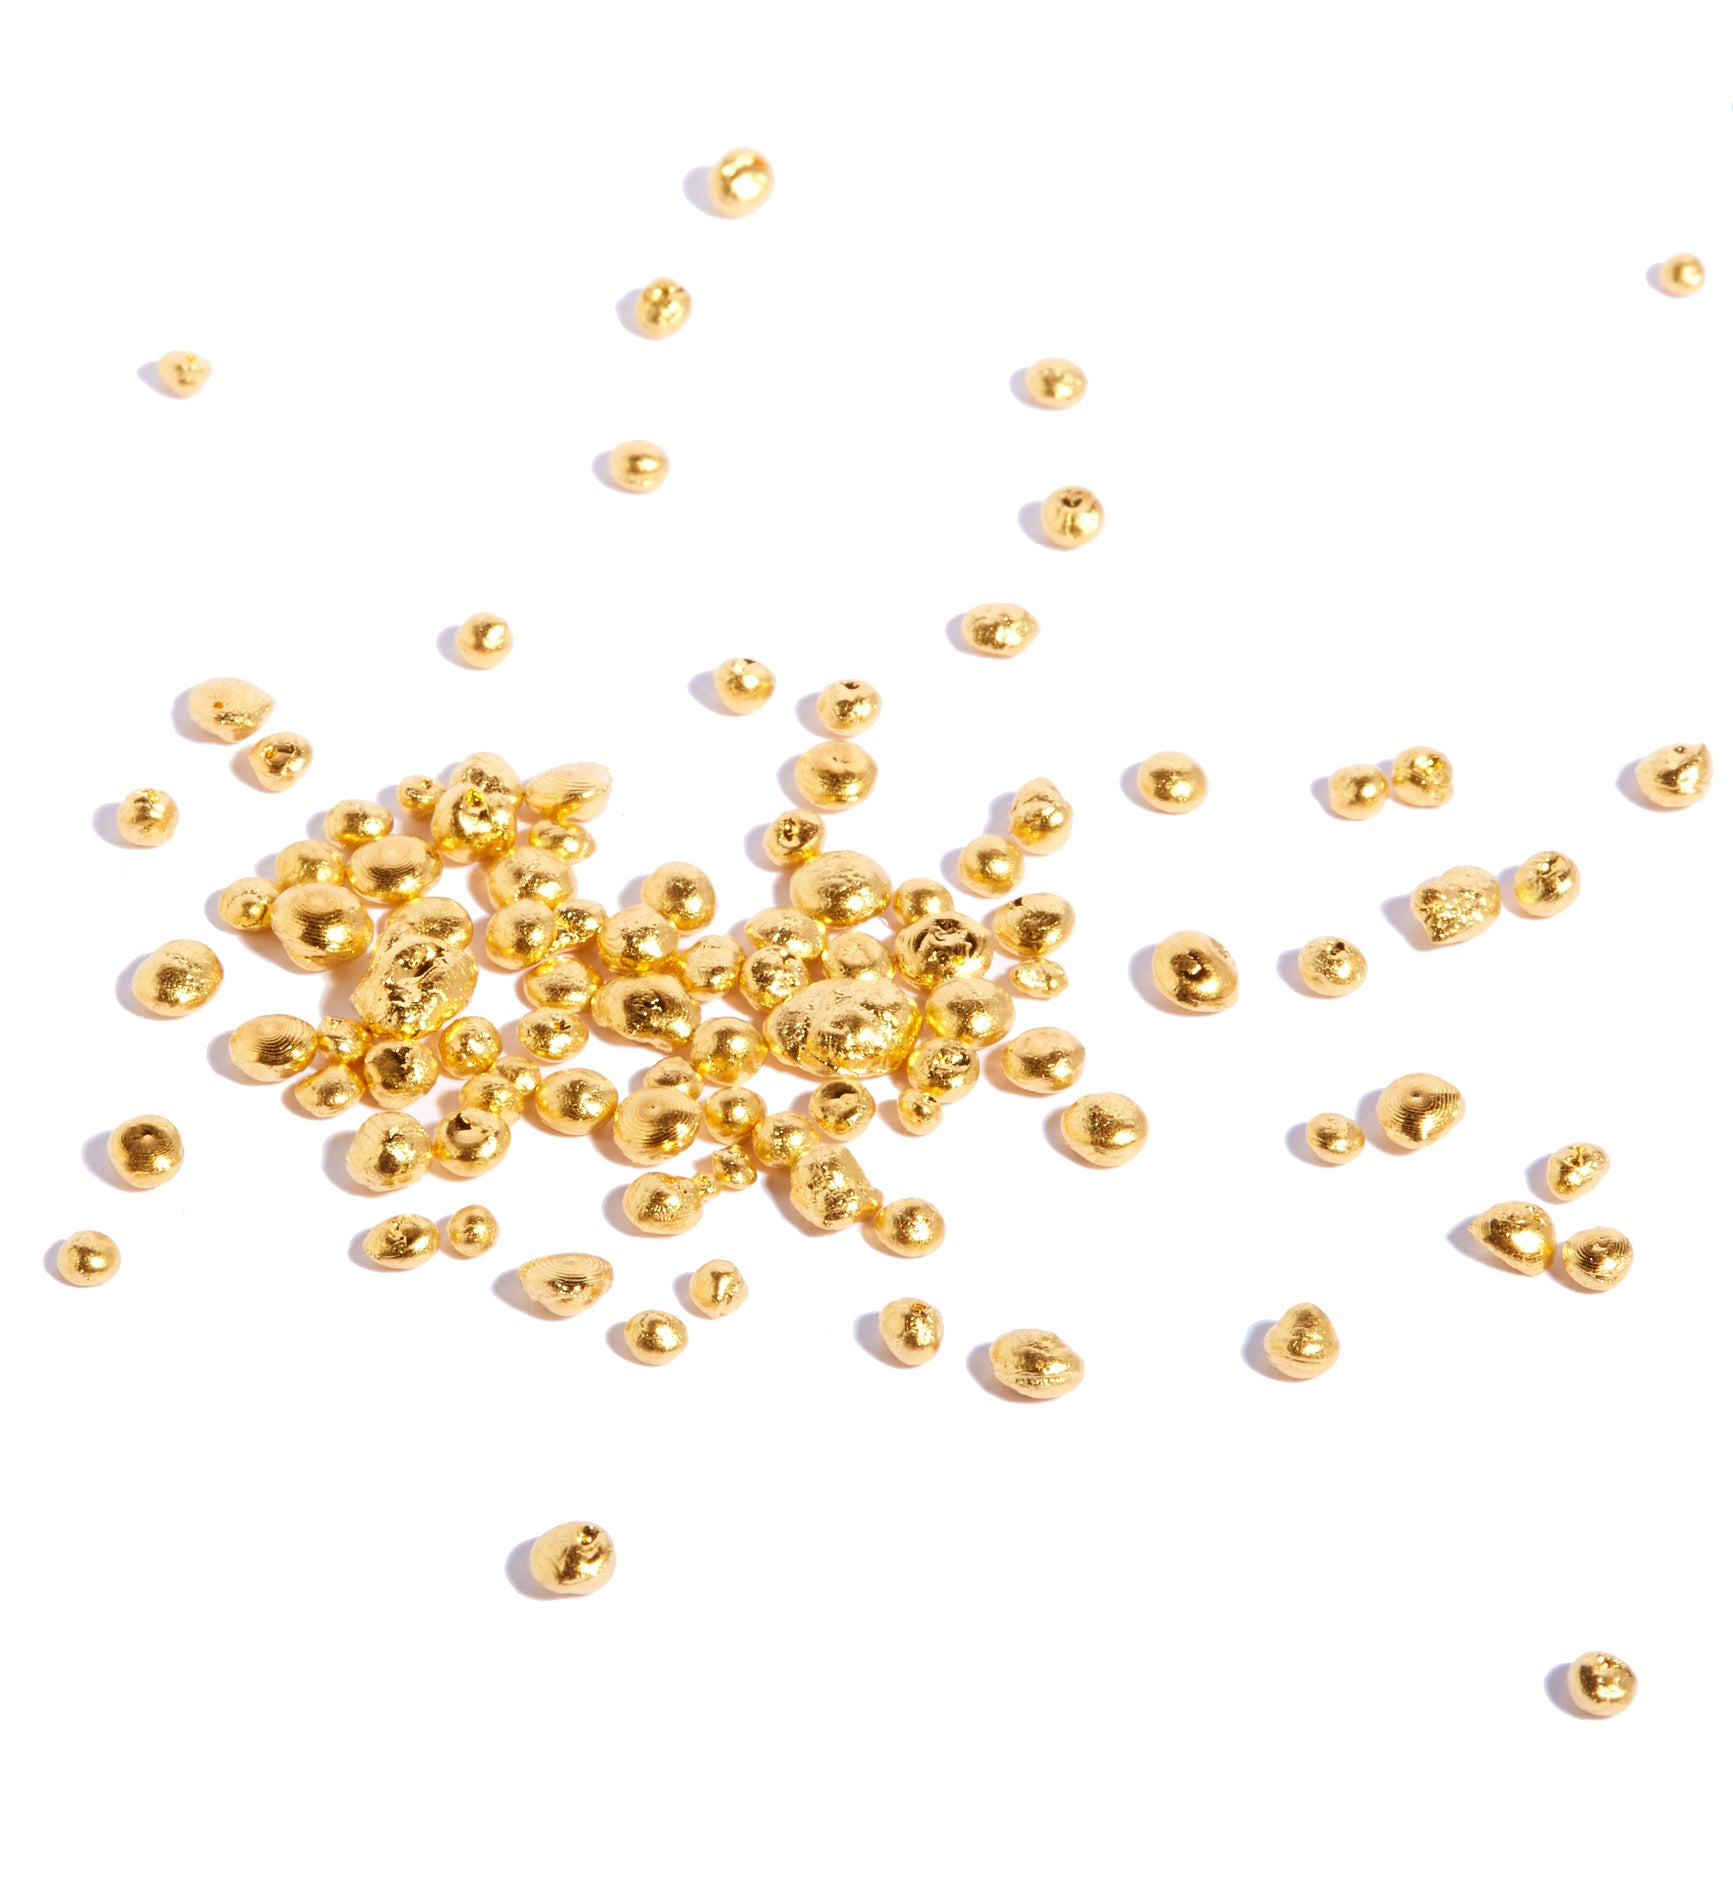 https://cdn.shopify.com/s/files/1/0571/9261/t/15/assets/gold%20granules-1509674800397.jpg?4218220763043563230